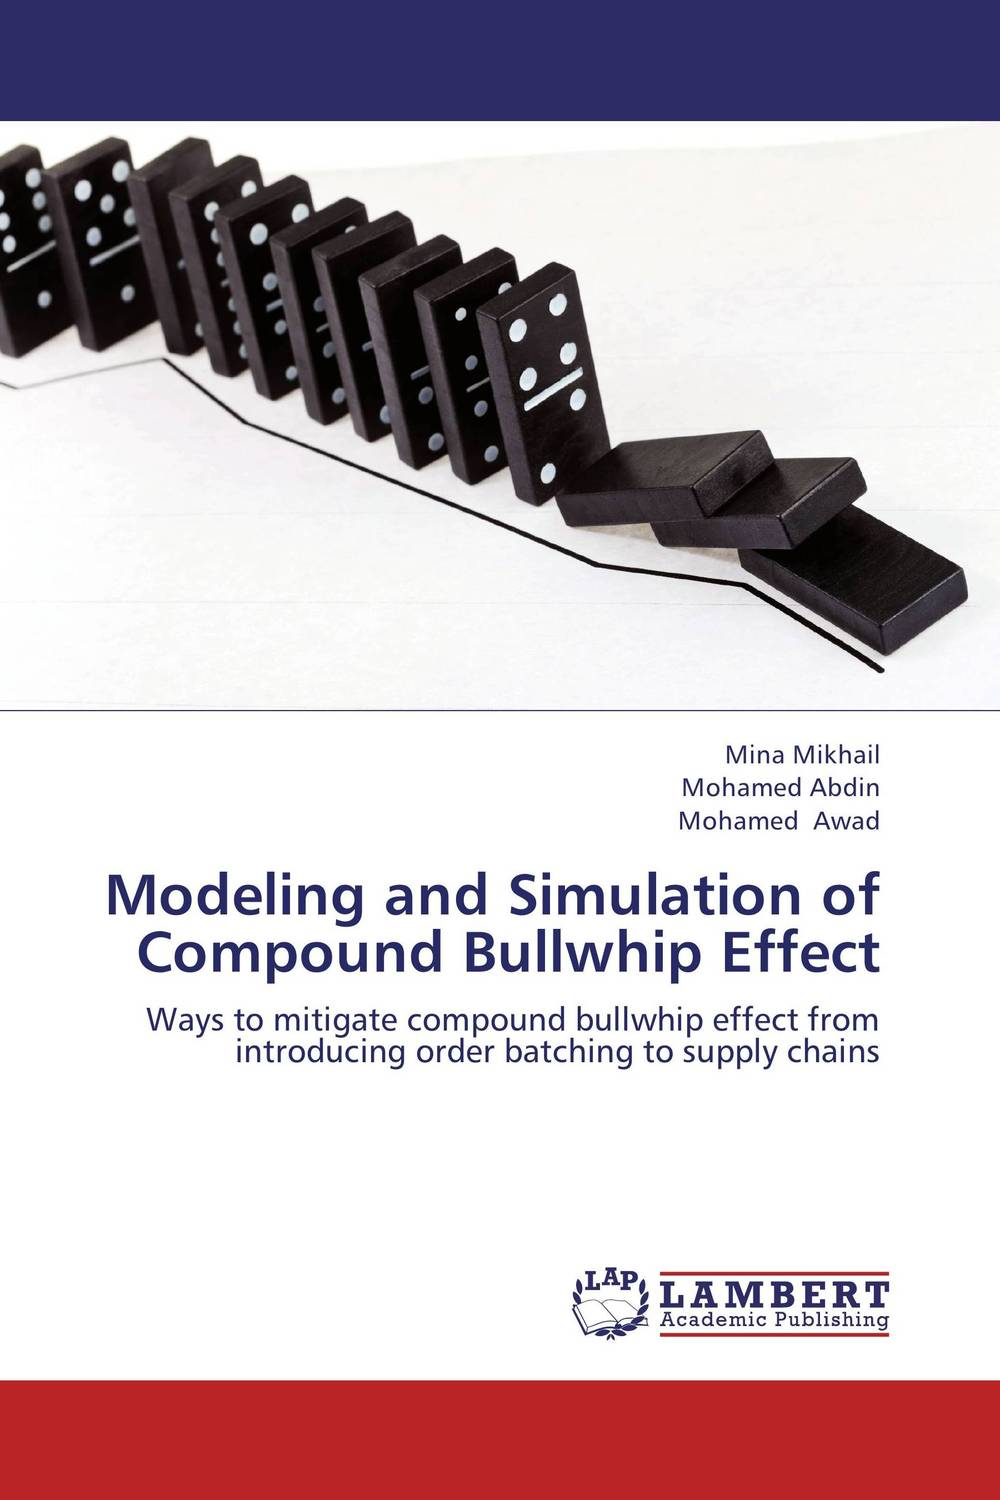 Modeling and Simulation of Compound Bullwhip Effect robert davis a demand driven inventory optimization and replenishment creating a more efficient supply chain